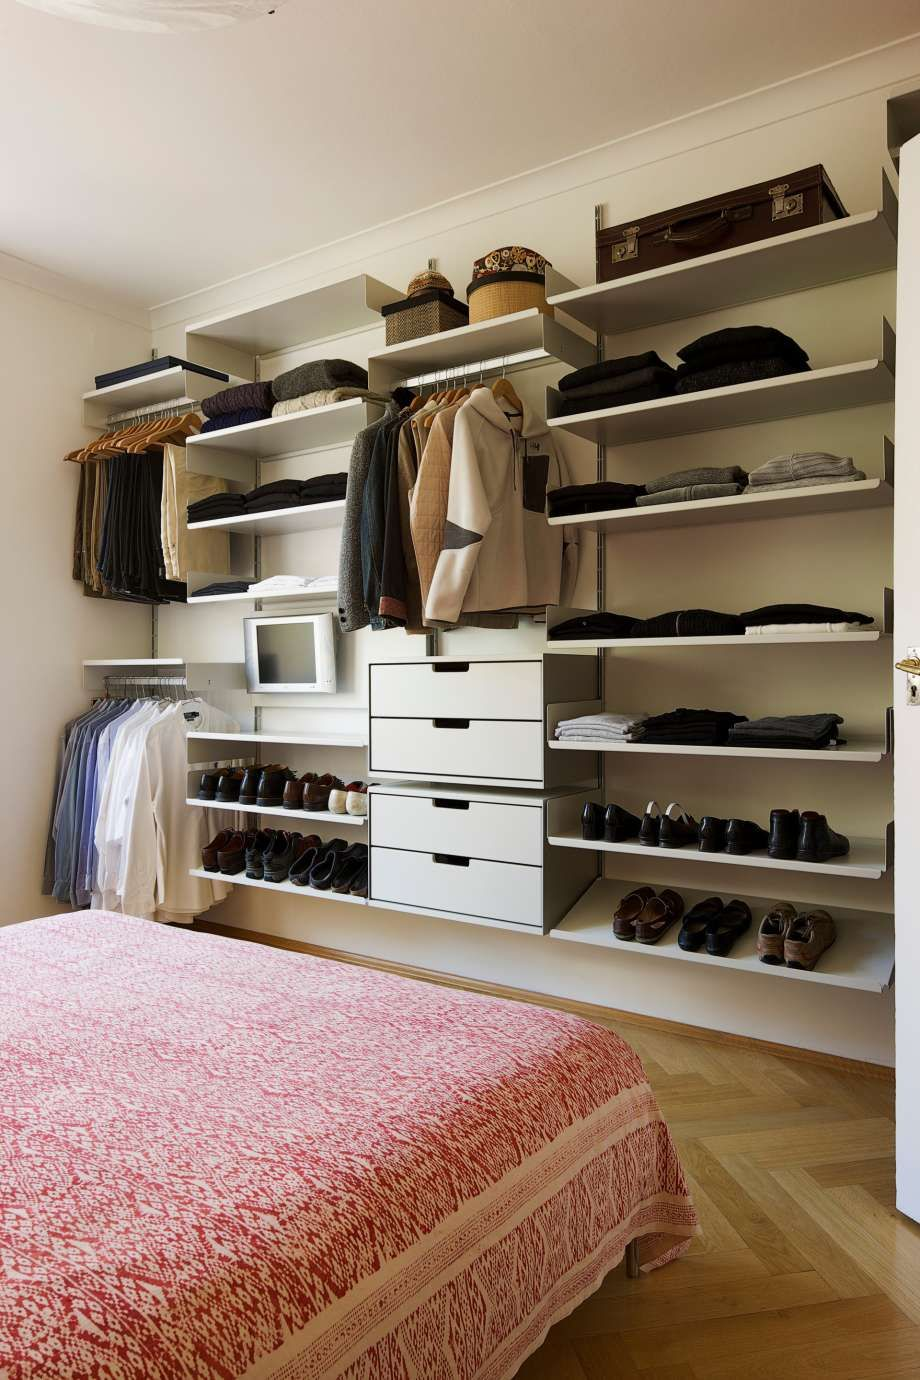 vitsoe the shoes clothes and hat storage solution for your bedroom note the hanging rails for shirts and trousers even the tv is squeezed in for bedtime